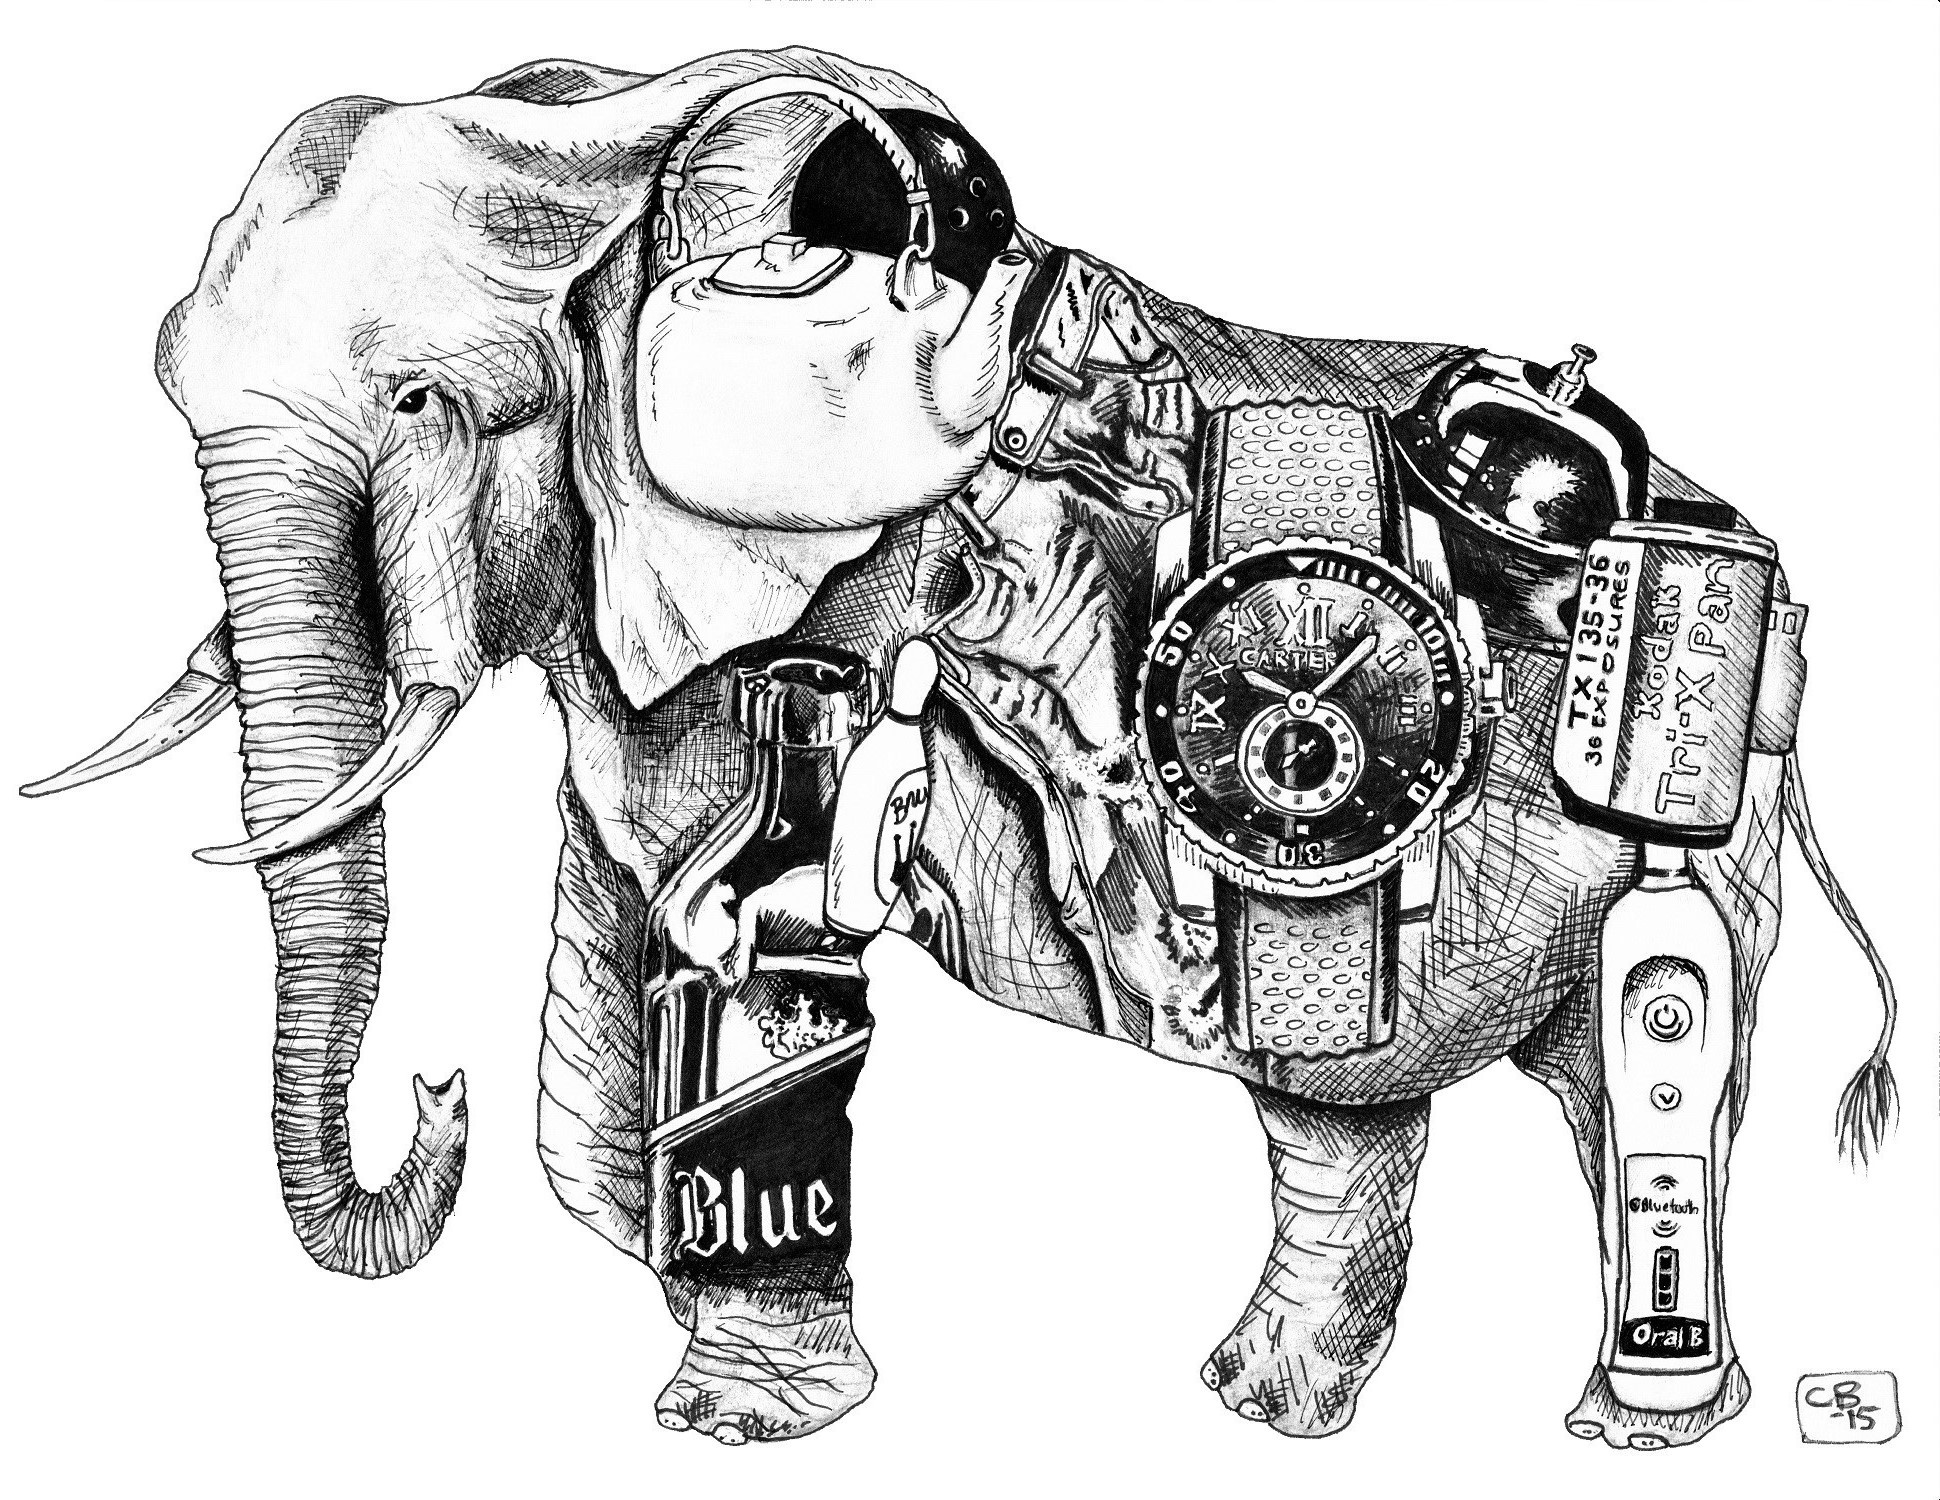 Elephant, Objects, Drawing, Detail, Animal, Colored Pencil, Marker